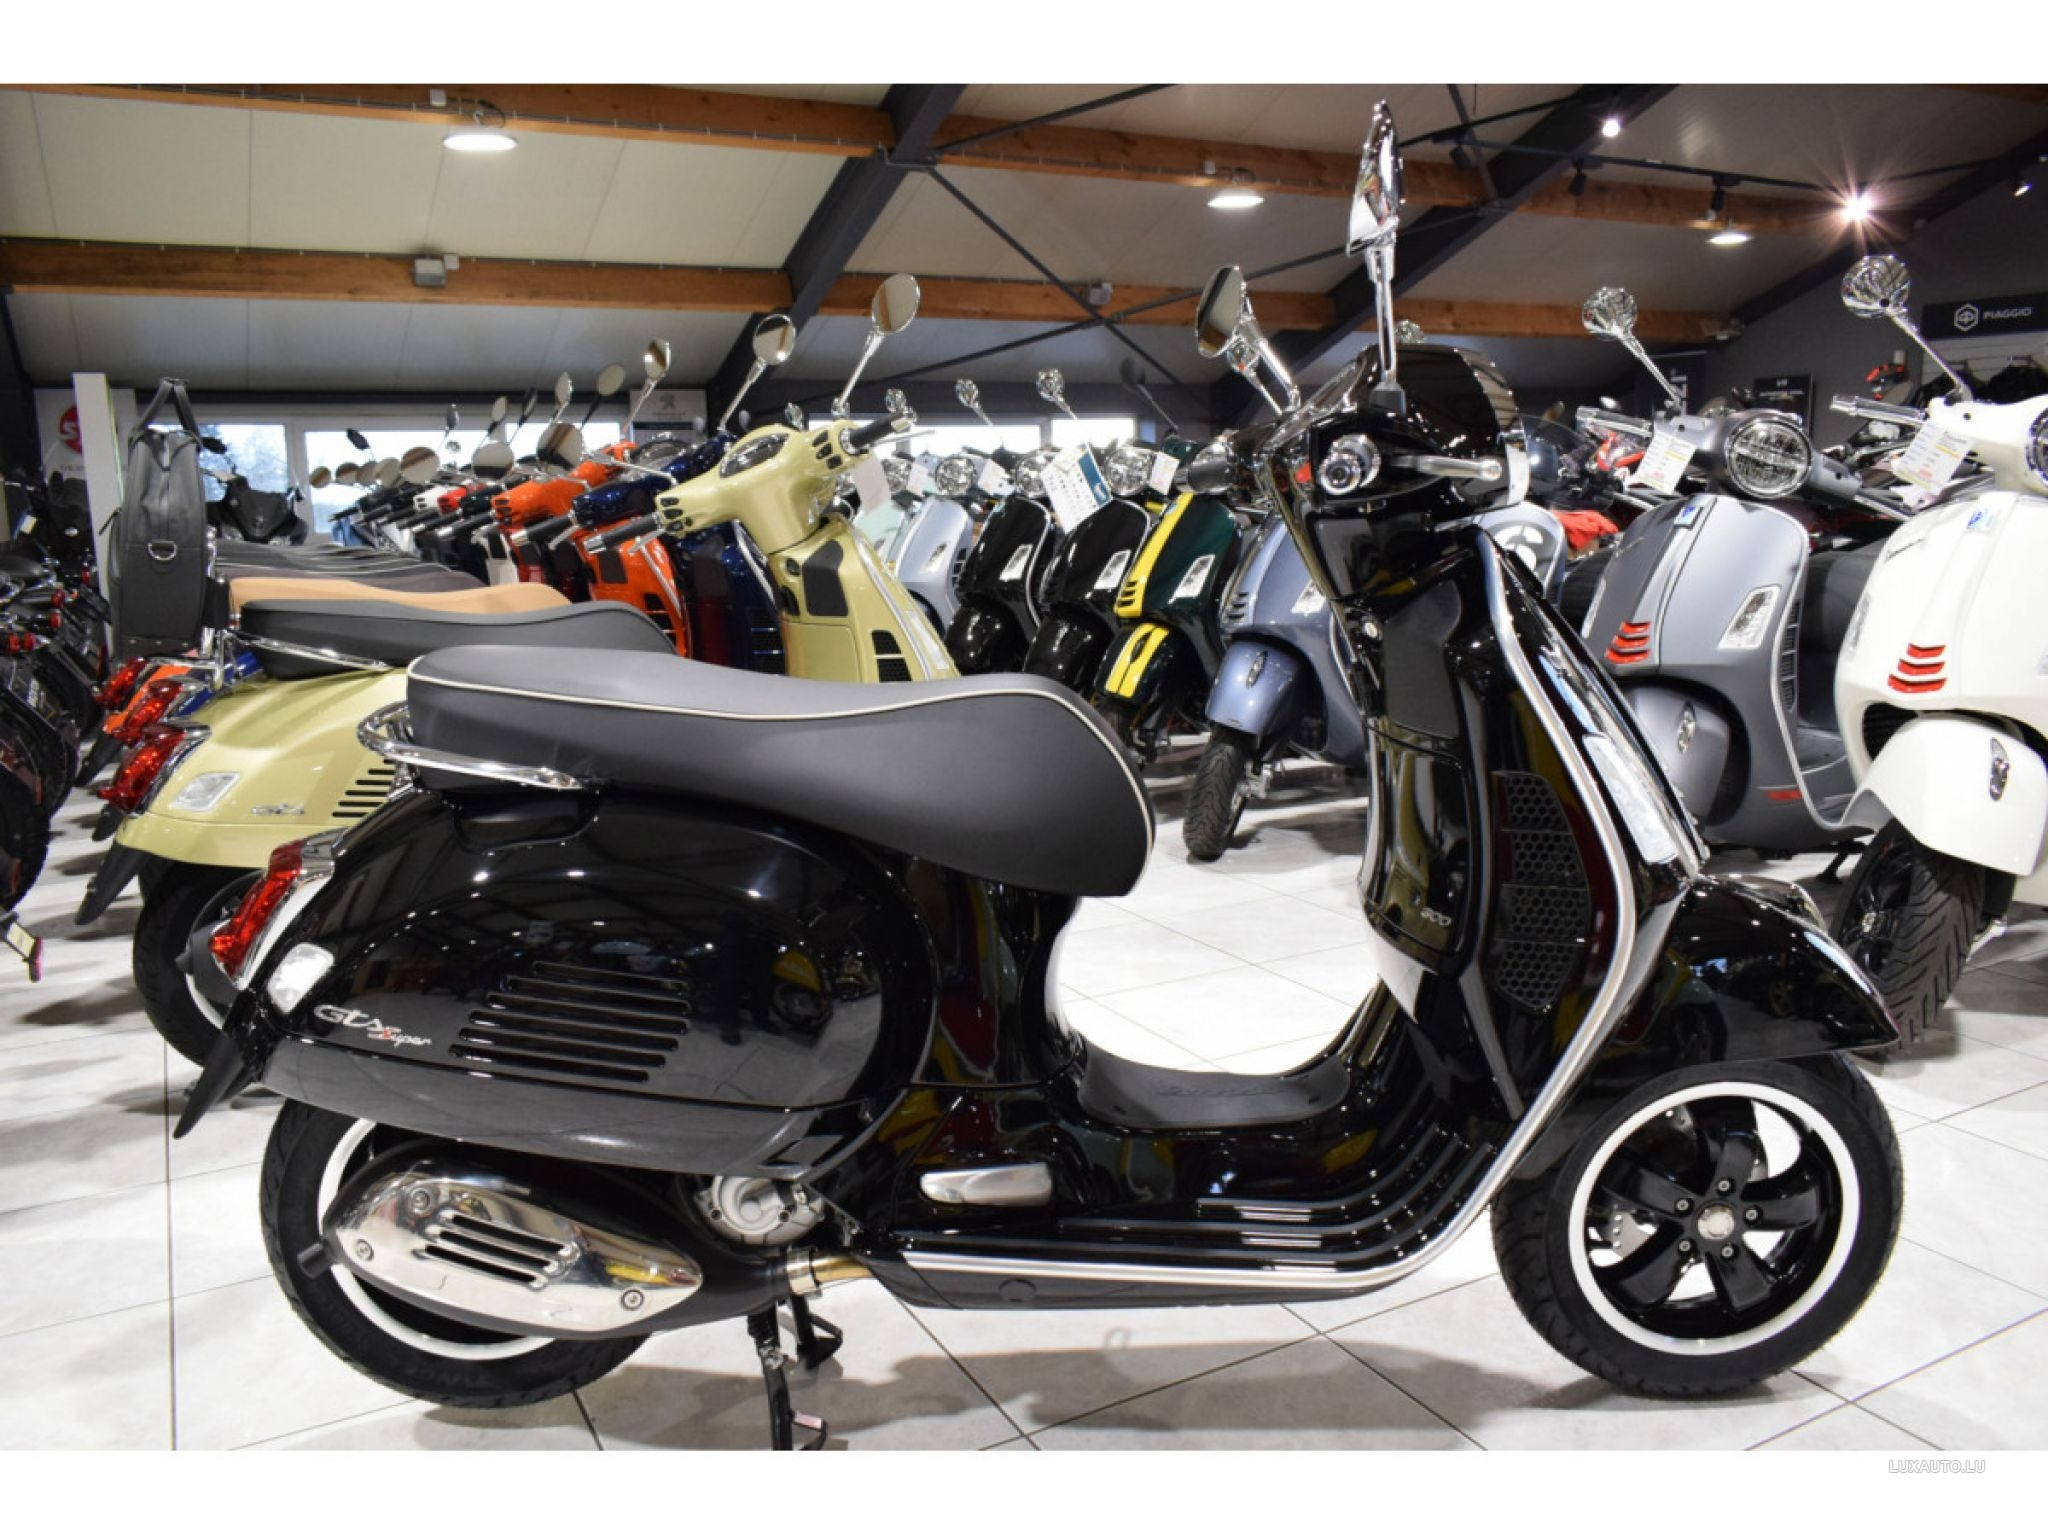 Vespa GTS 300ie Super ABS